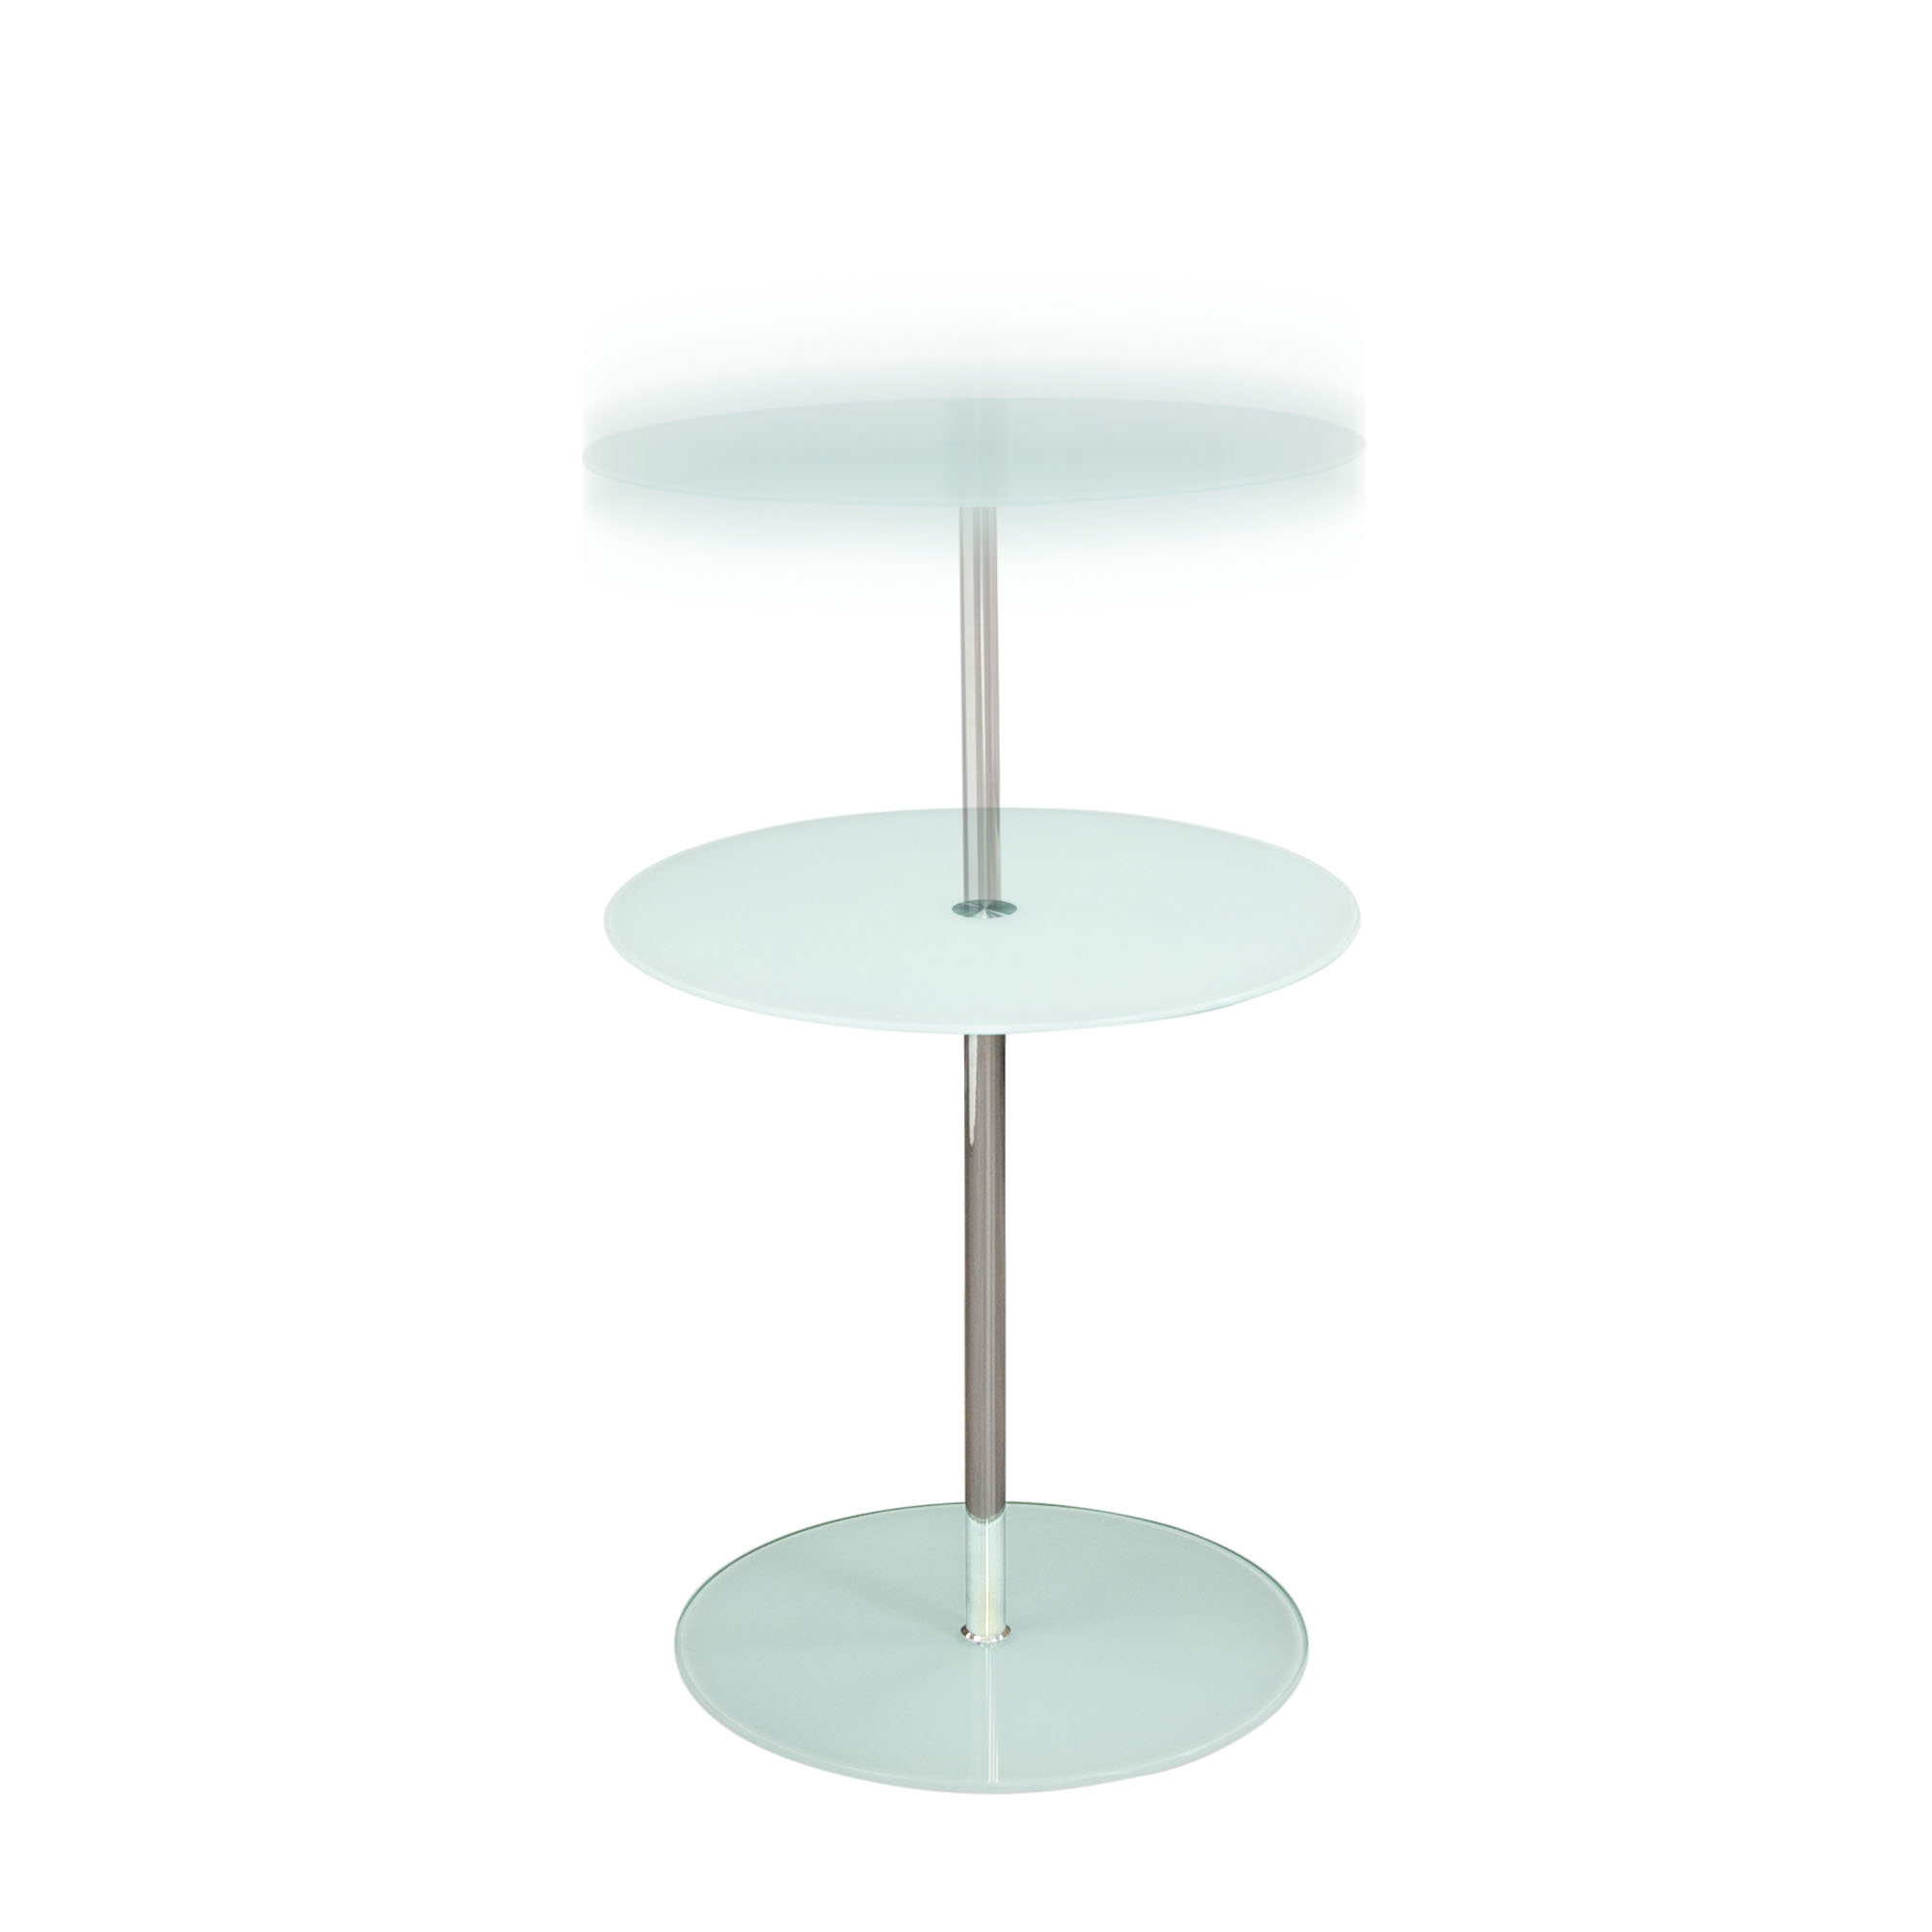 orbit adjustable height glass accent table white big orbitetwh modern corner black and lamp oak mirrored furniture toronto outdoor sets round metal cocktail thin wall windham door